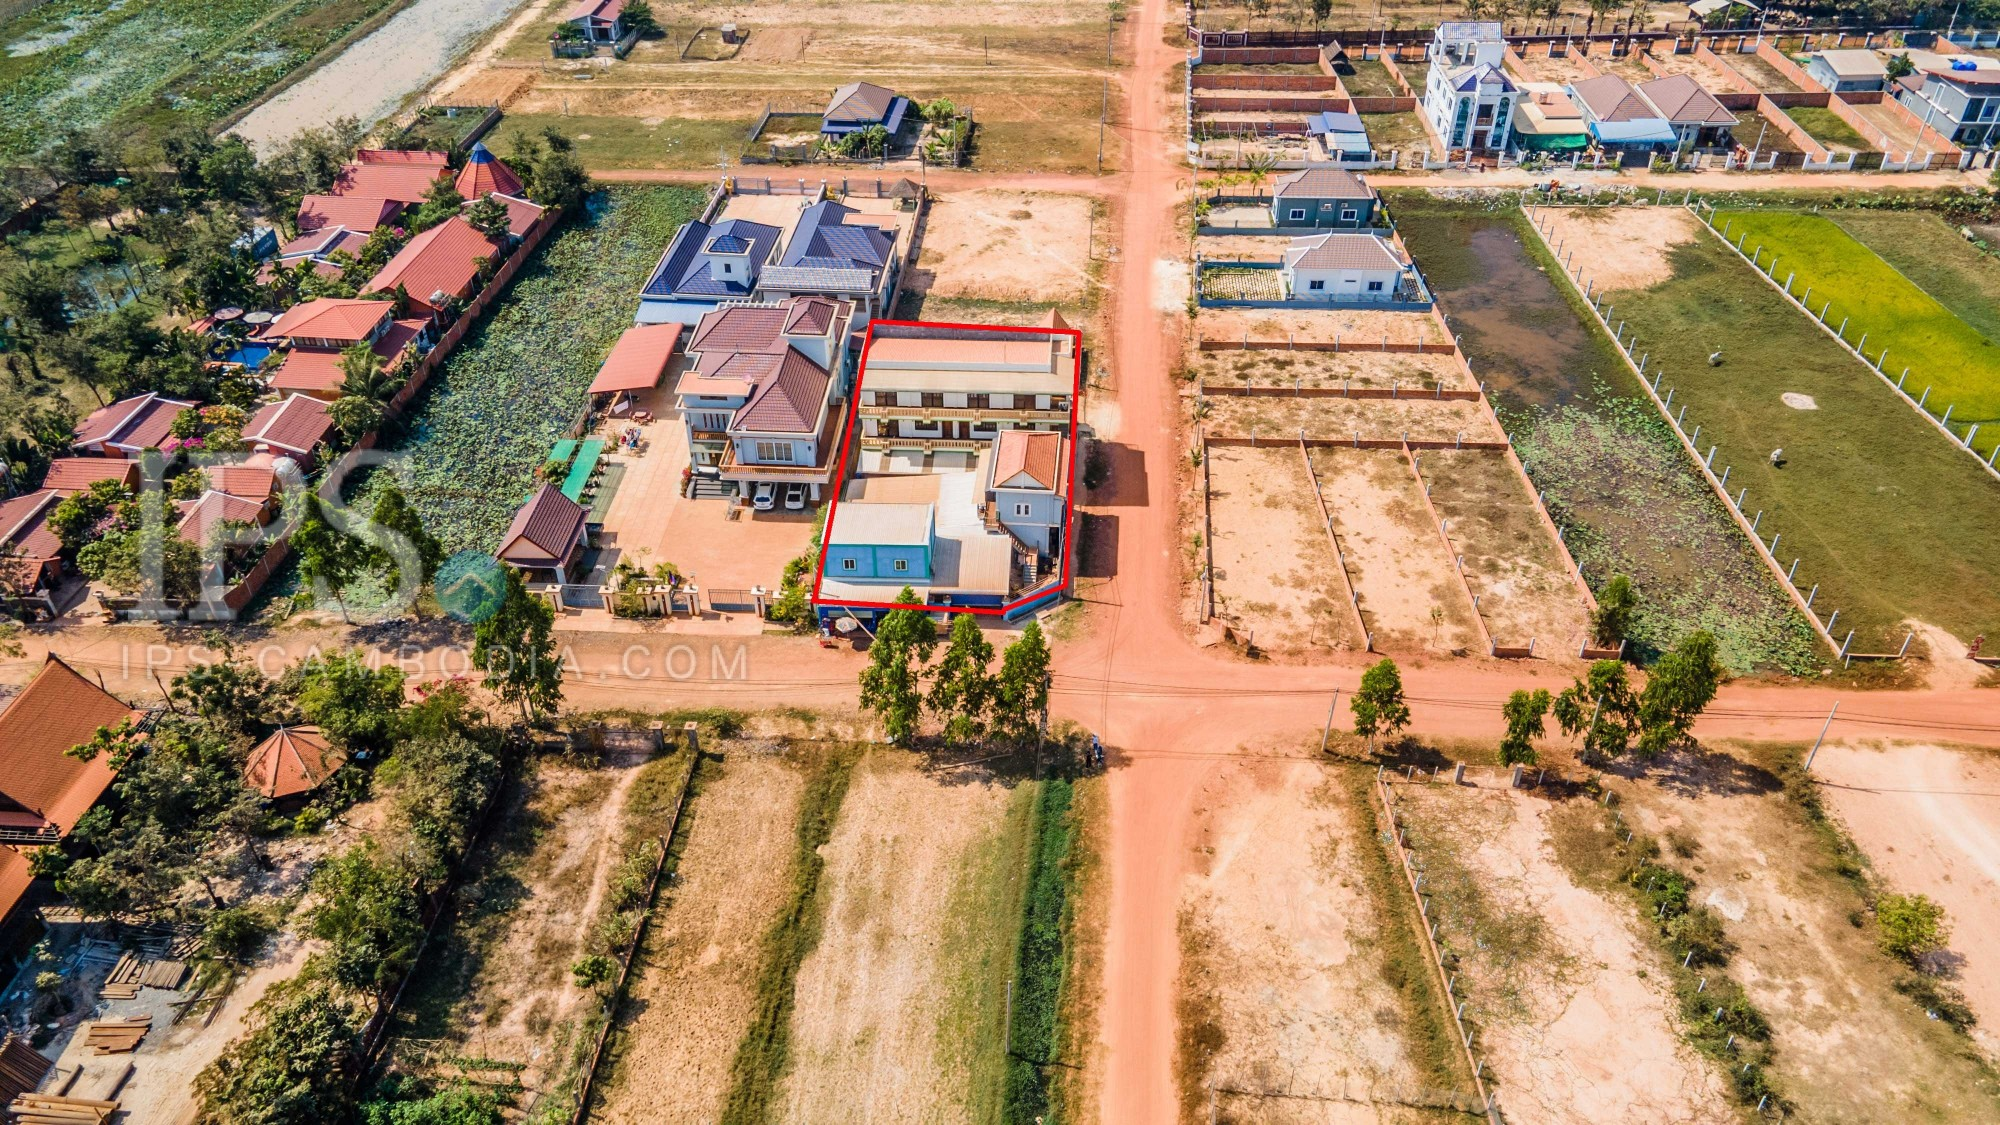 4 House Residential Compound For Sale - Svay Dangkum, Siem Reap